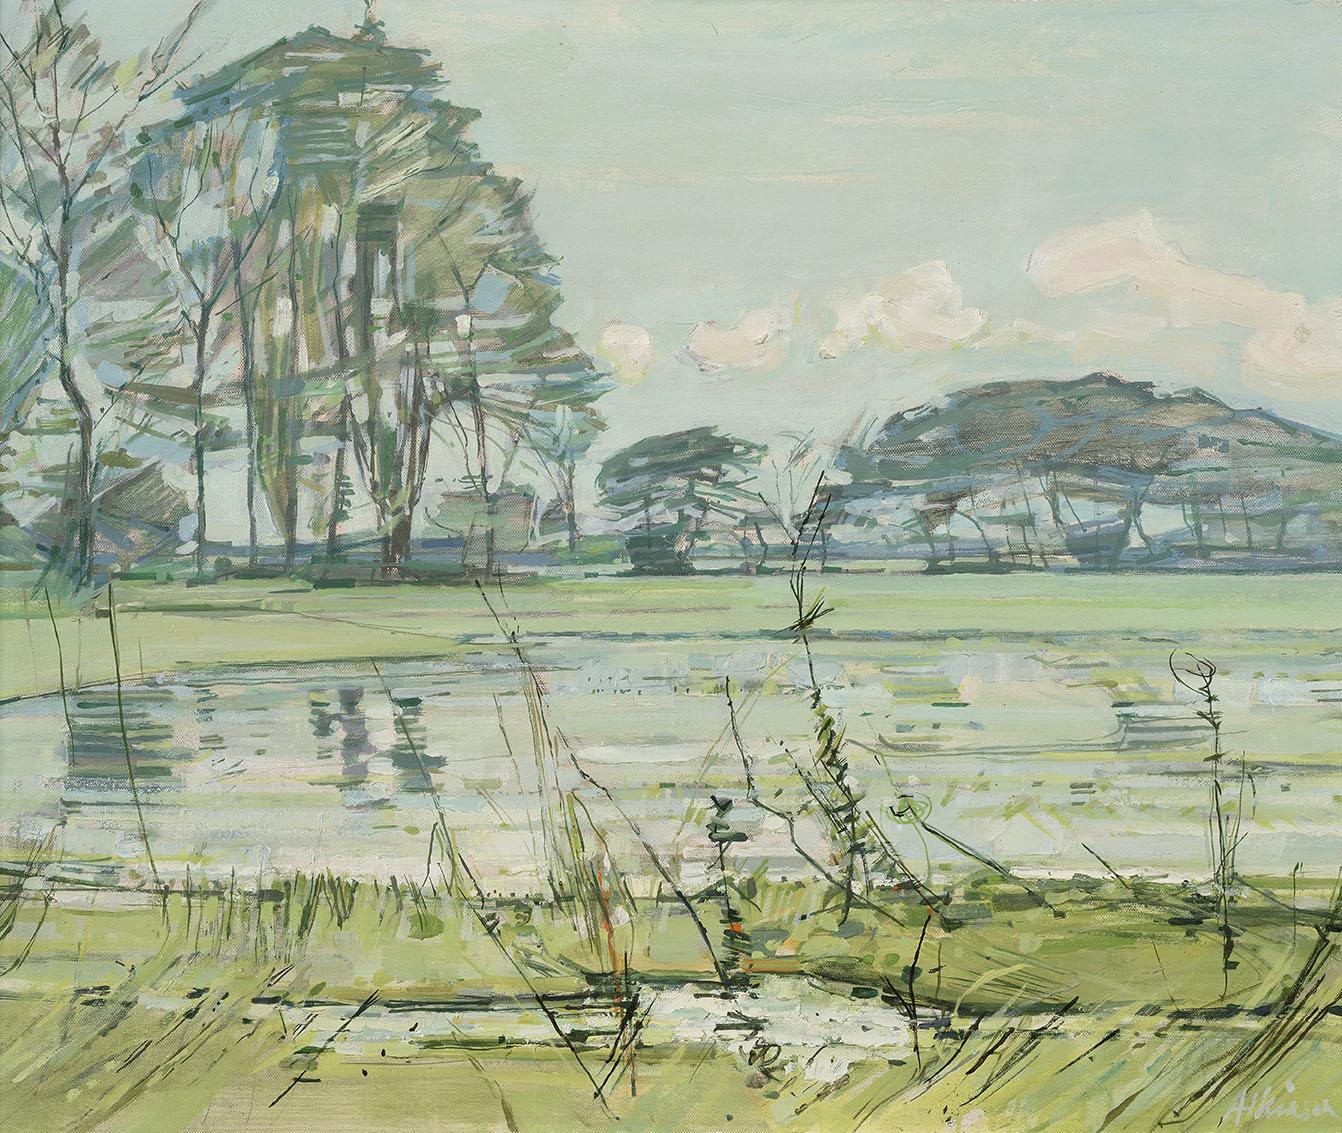 Anthony Atkinson ARCA (1929-2014)    Floods at Boxted,  c. 1966, Oil on canvas, 30 x 24 in  [CAS 10] Acquired in 1966